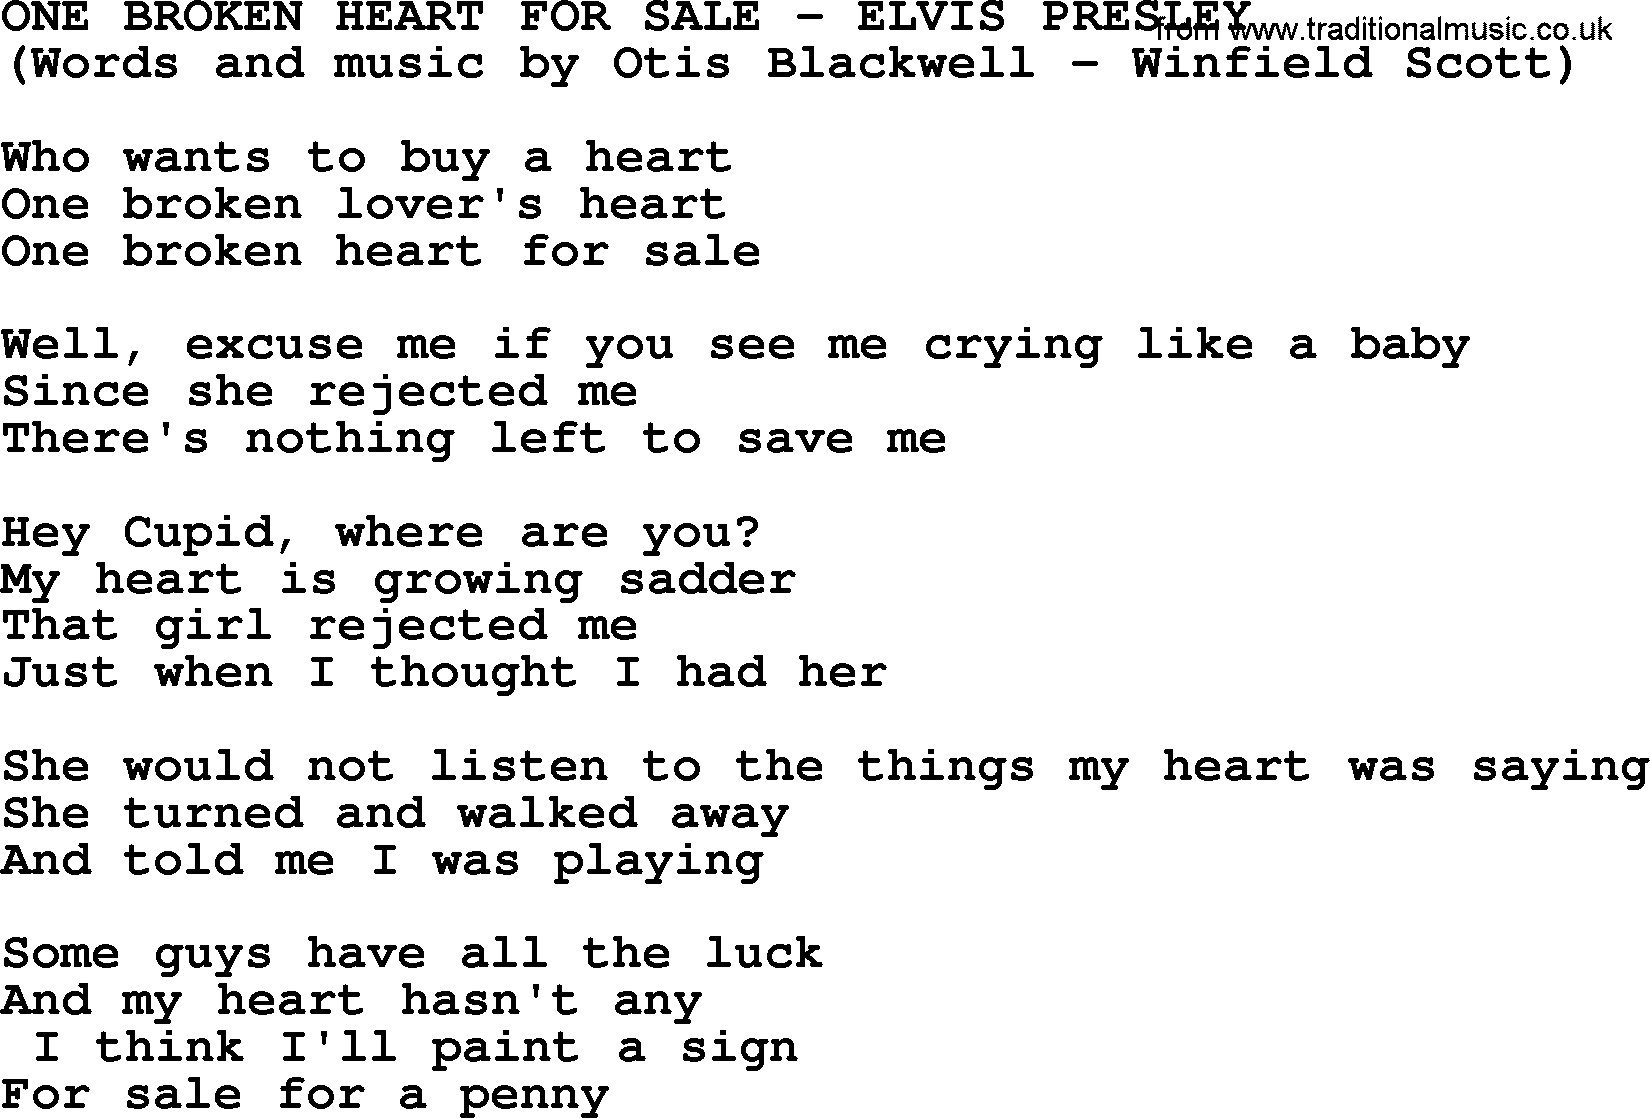 One Broken Heart For Sale By Elvis Presley Lyrics